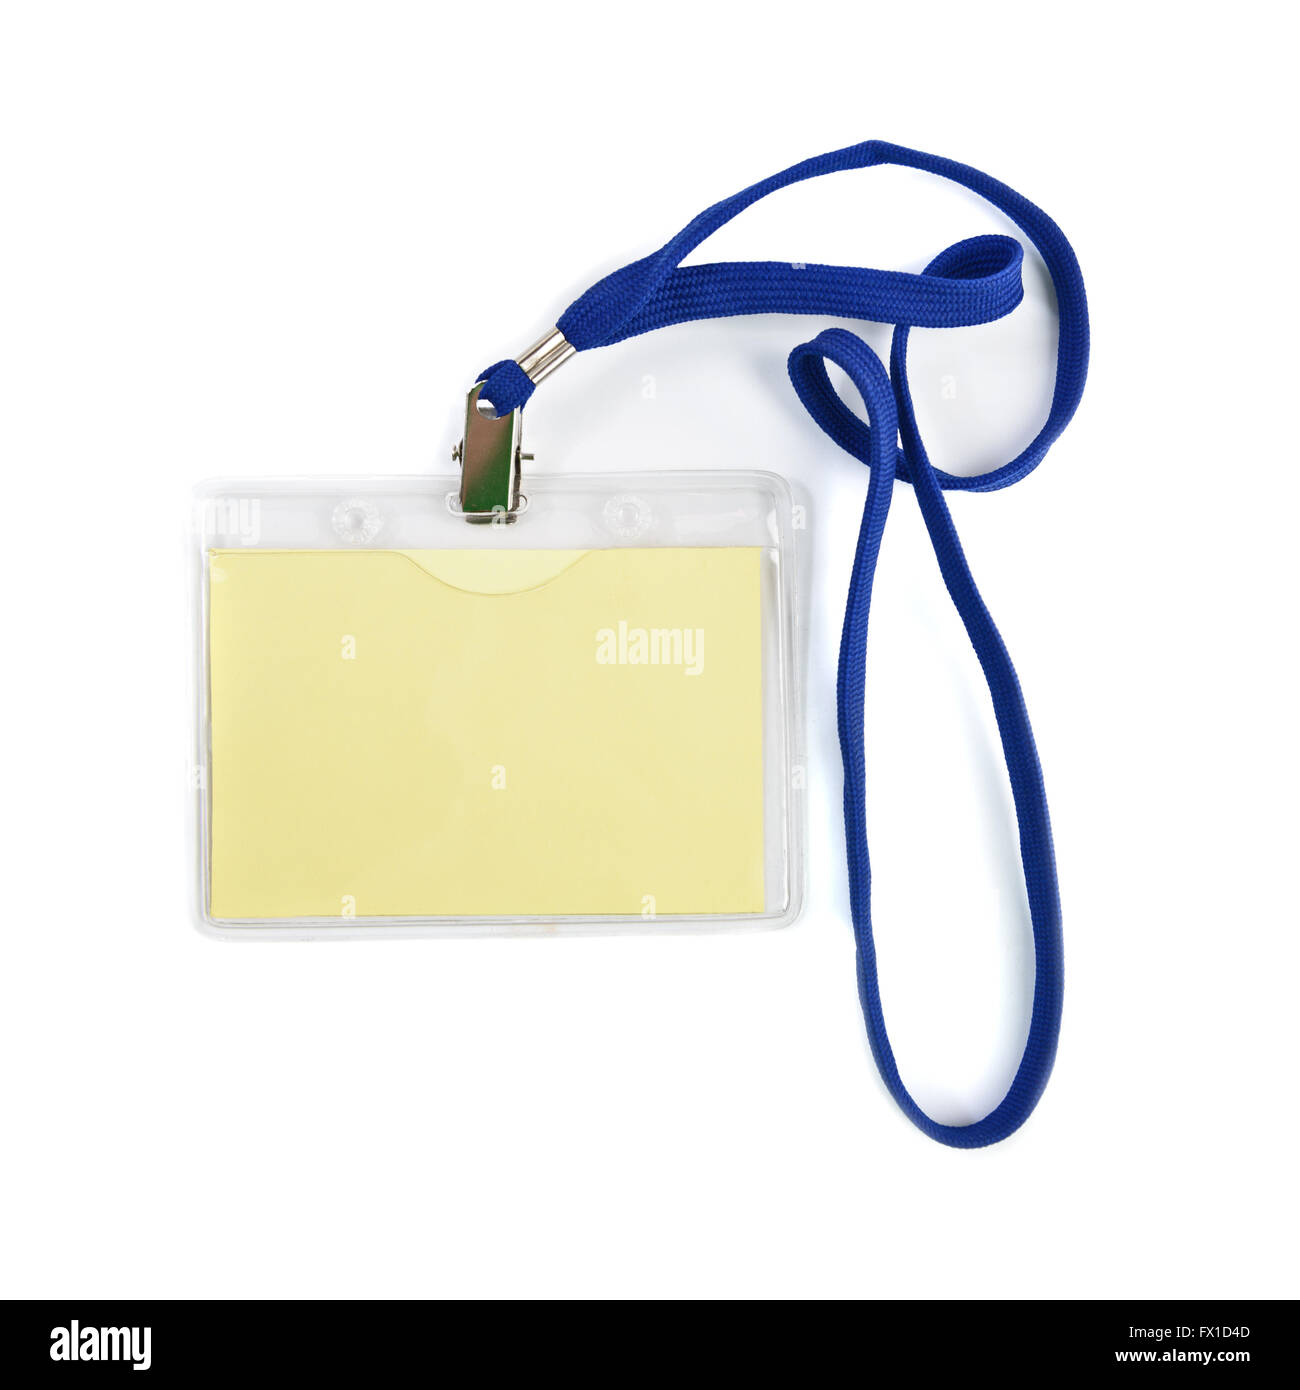 Blank ID or security card with blue neck strap - Stock Image